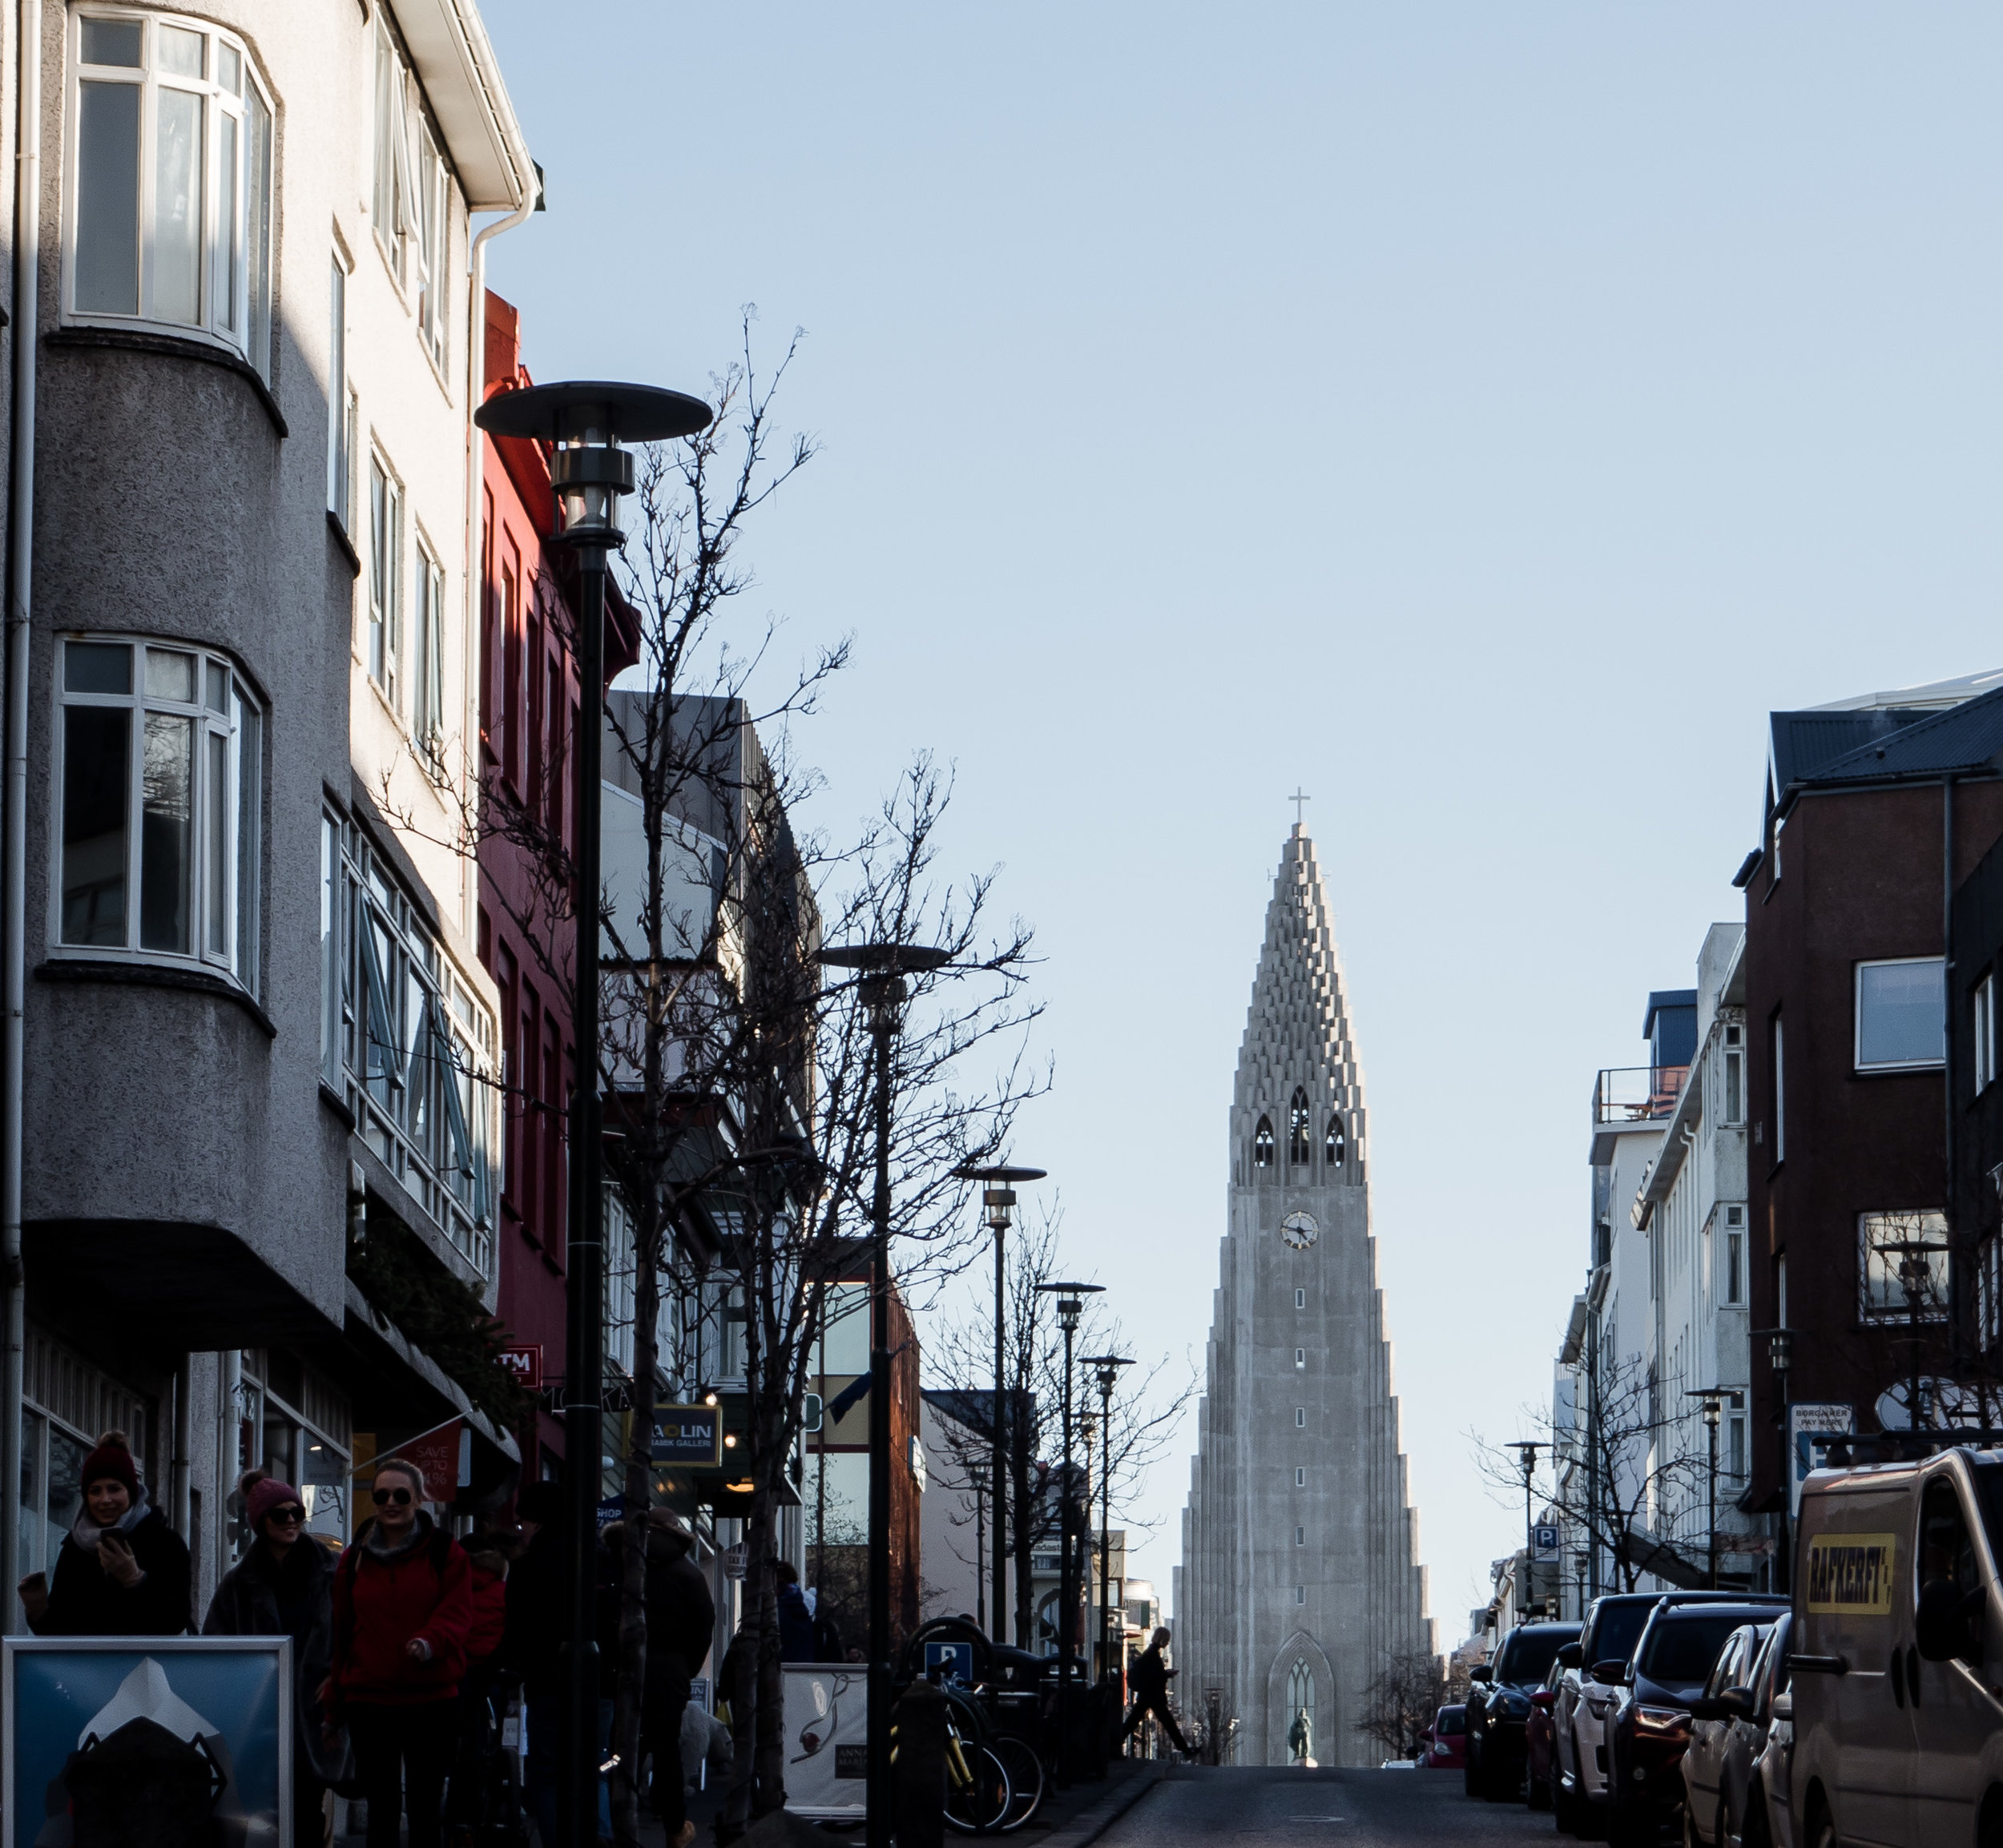 Reykjavik - What to do, where to go, and what to eat.